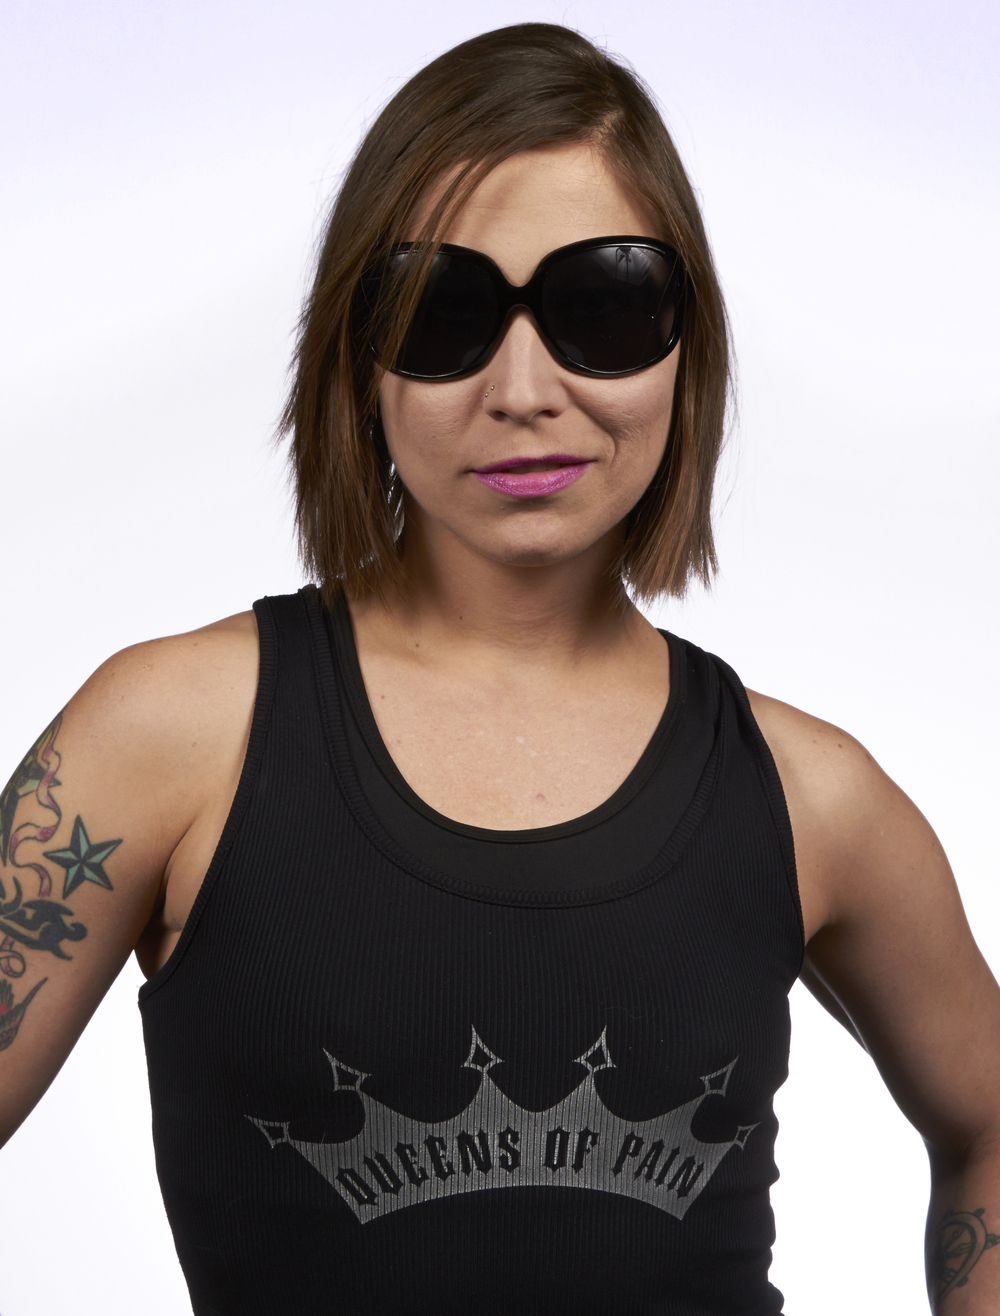 Nail Diamond, Queens of Pain. Photo: Jean Schwarzwalder